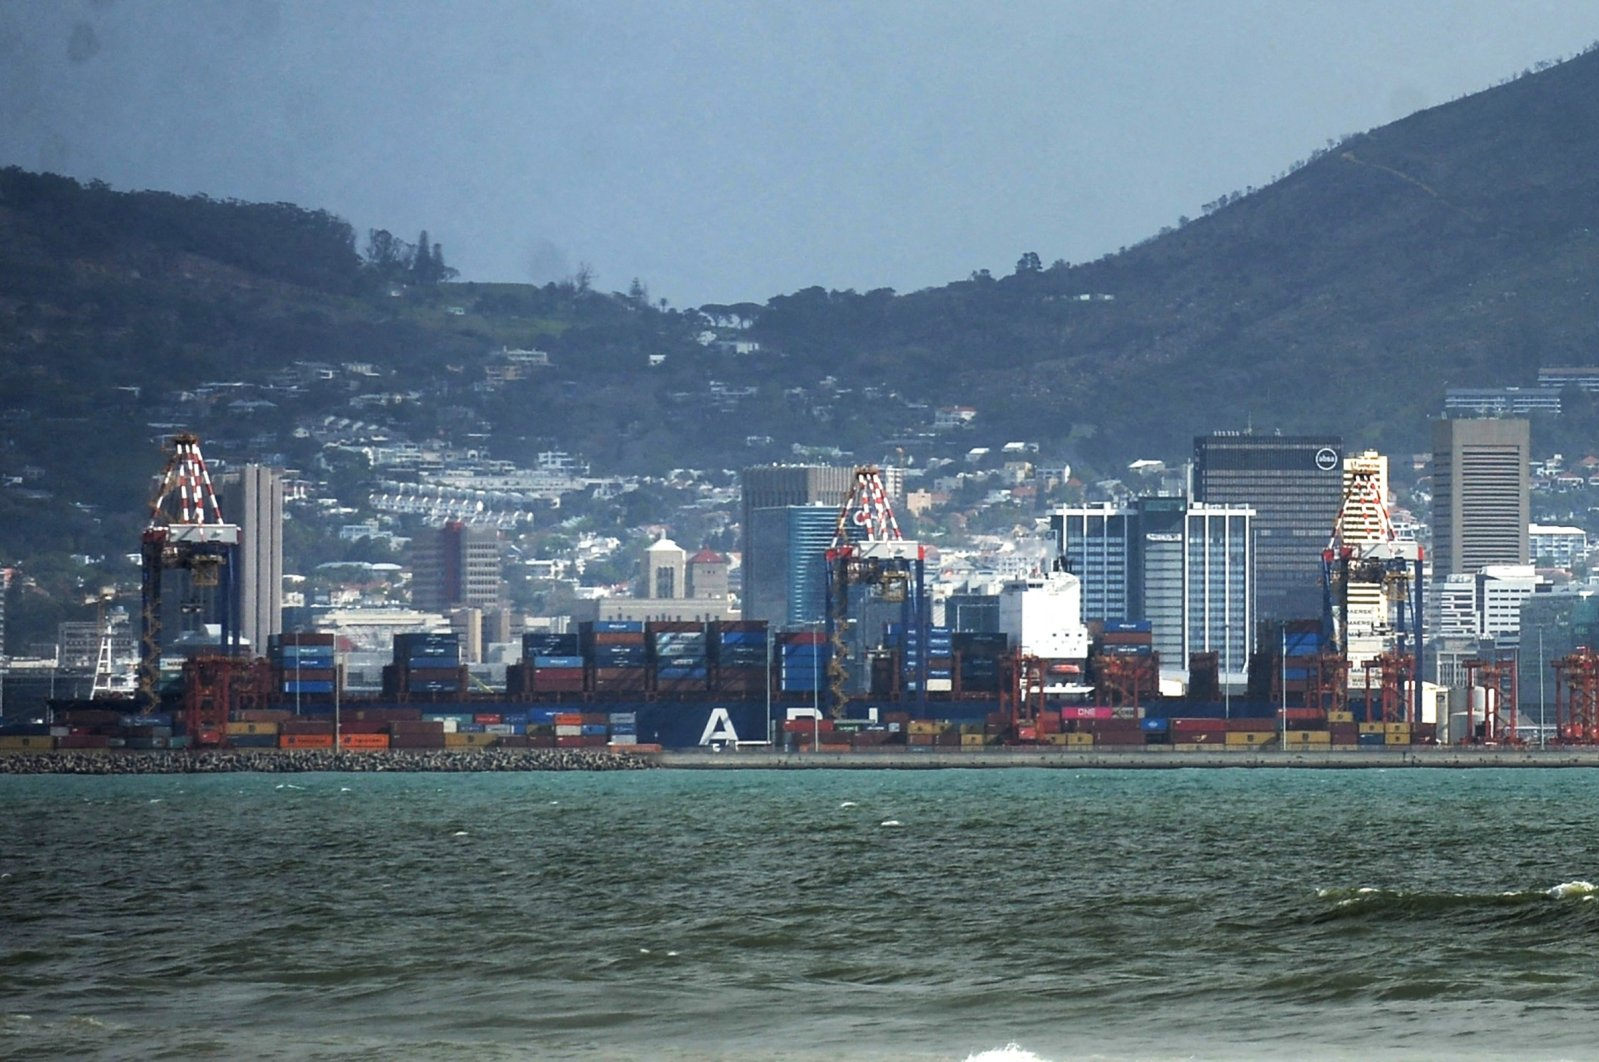 The Port of Cape Town seen amid the COVID-19 pandemic, South Africa, Aug. 11, 2020. (Reuters Photo)